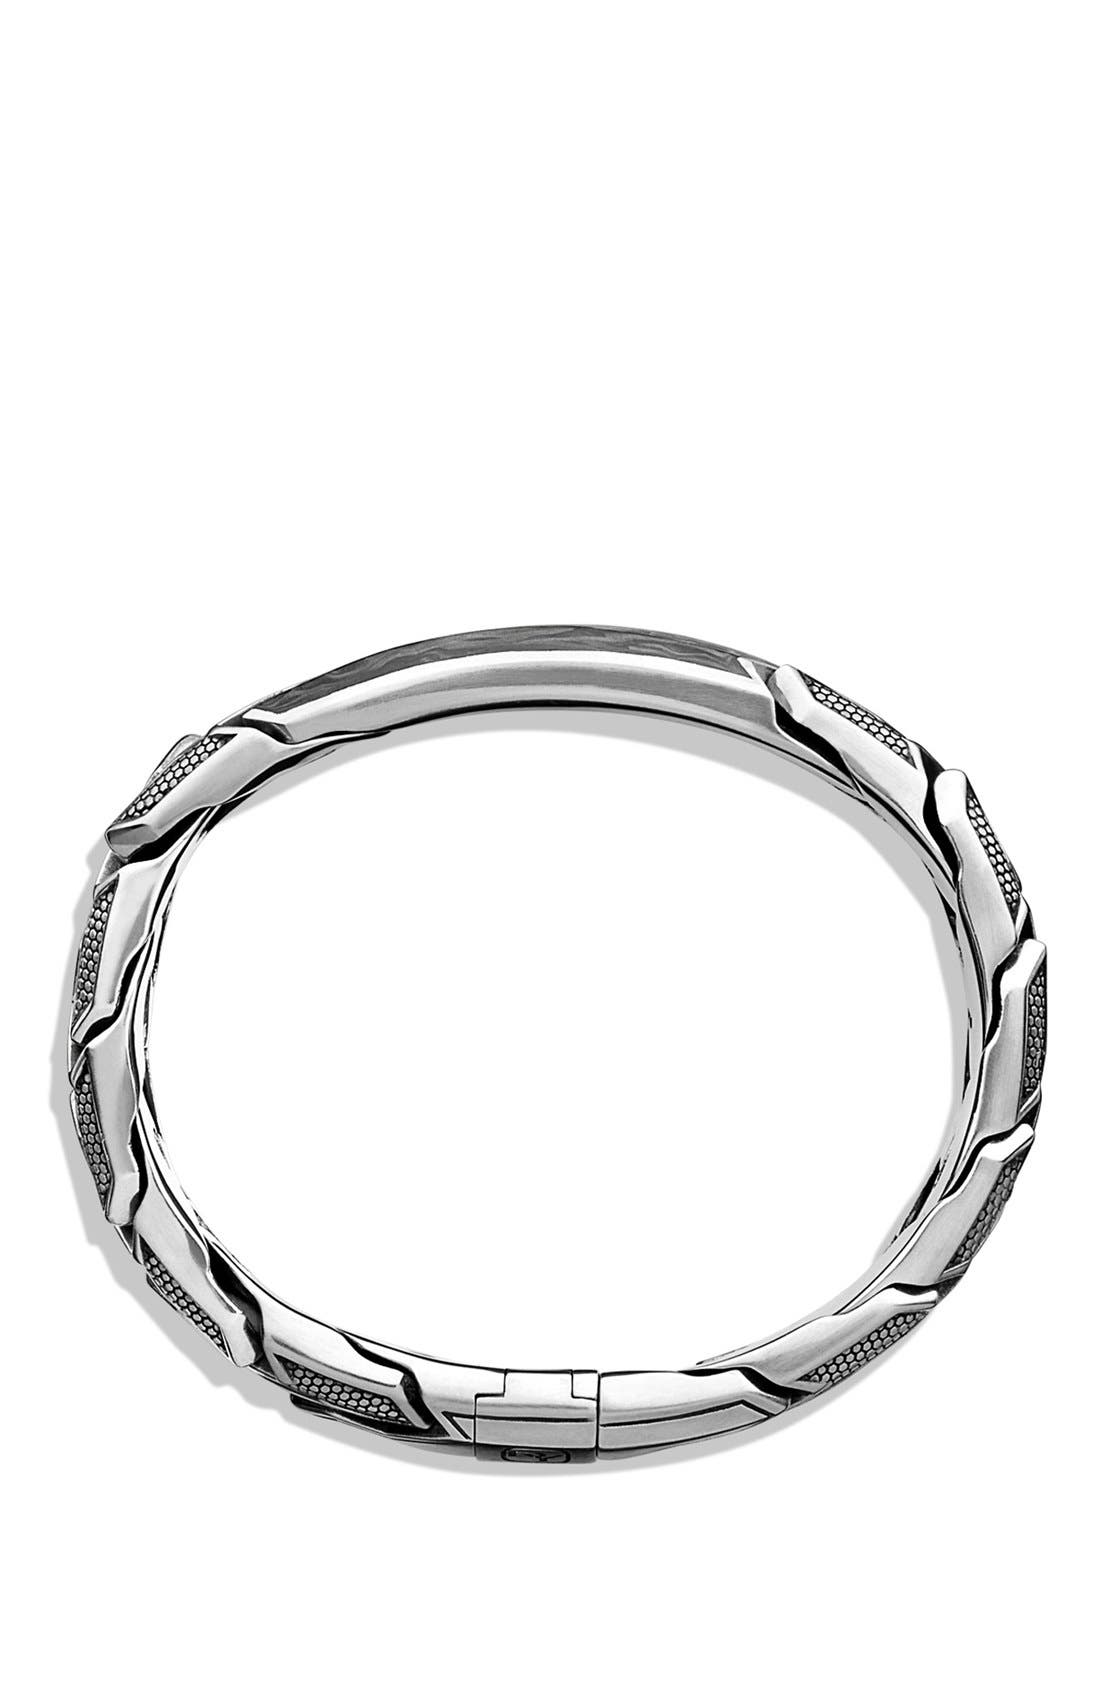 DAVID YURMAN,                             Forged Carbon ID Bracelet,                             Alternate thumbnail 3, color,                             FORGED CARBON